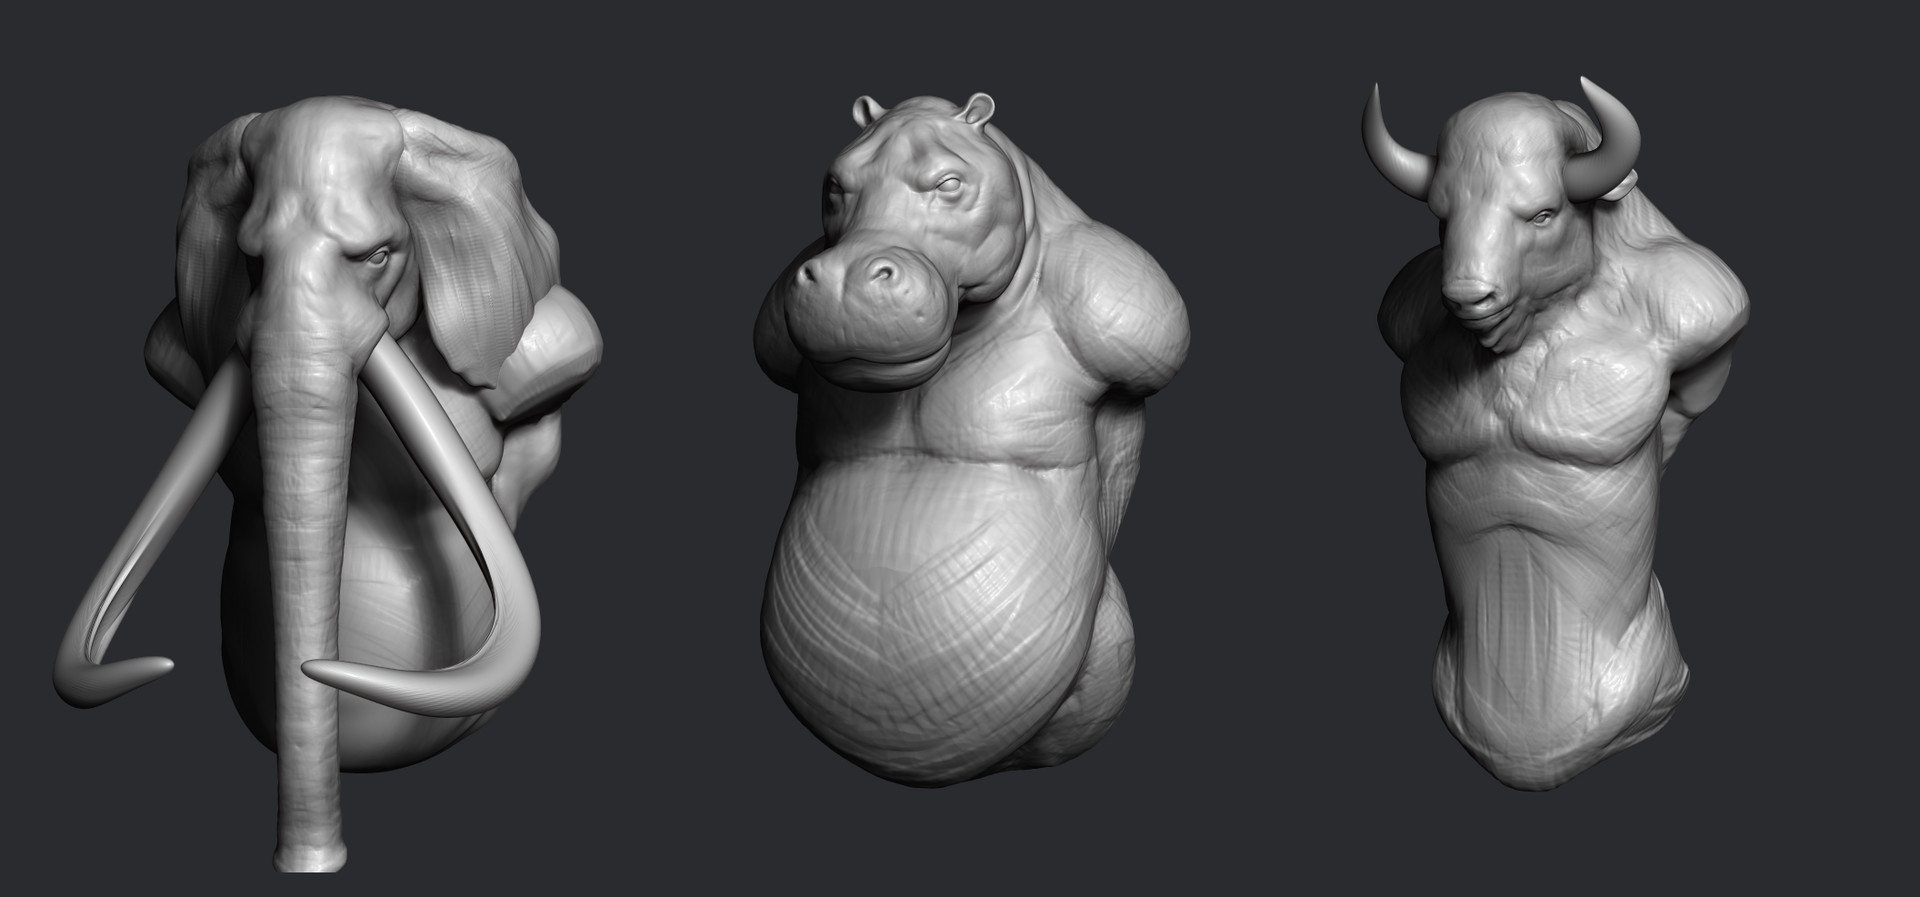 The next animals to make. This is how it start with super quick and rough 10 min sketches.